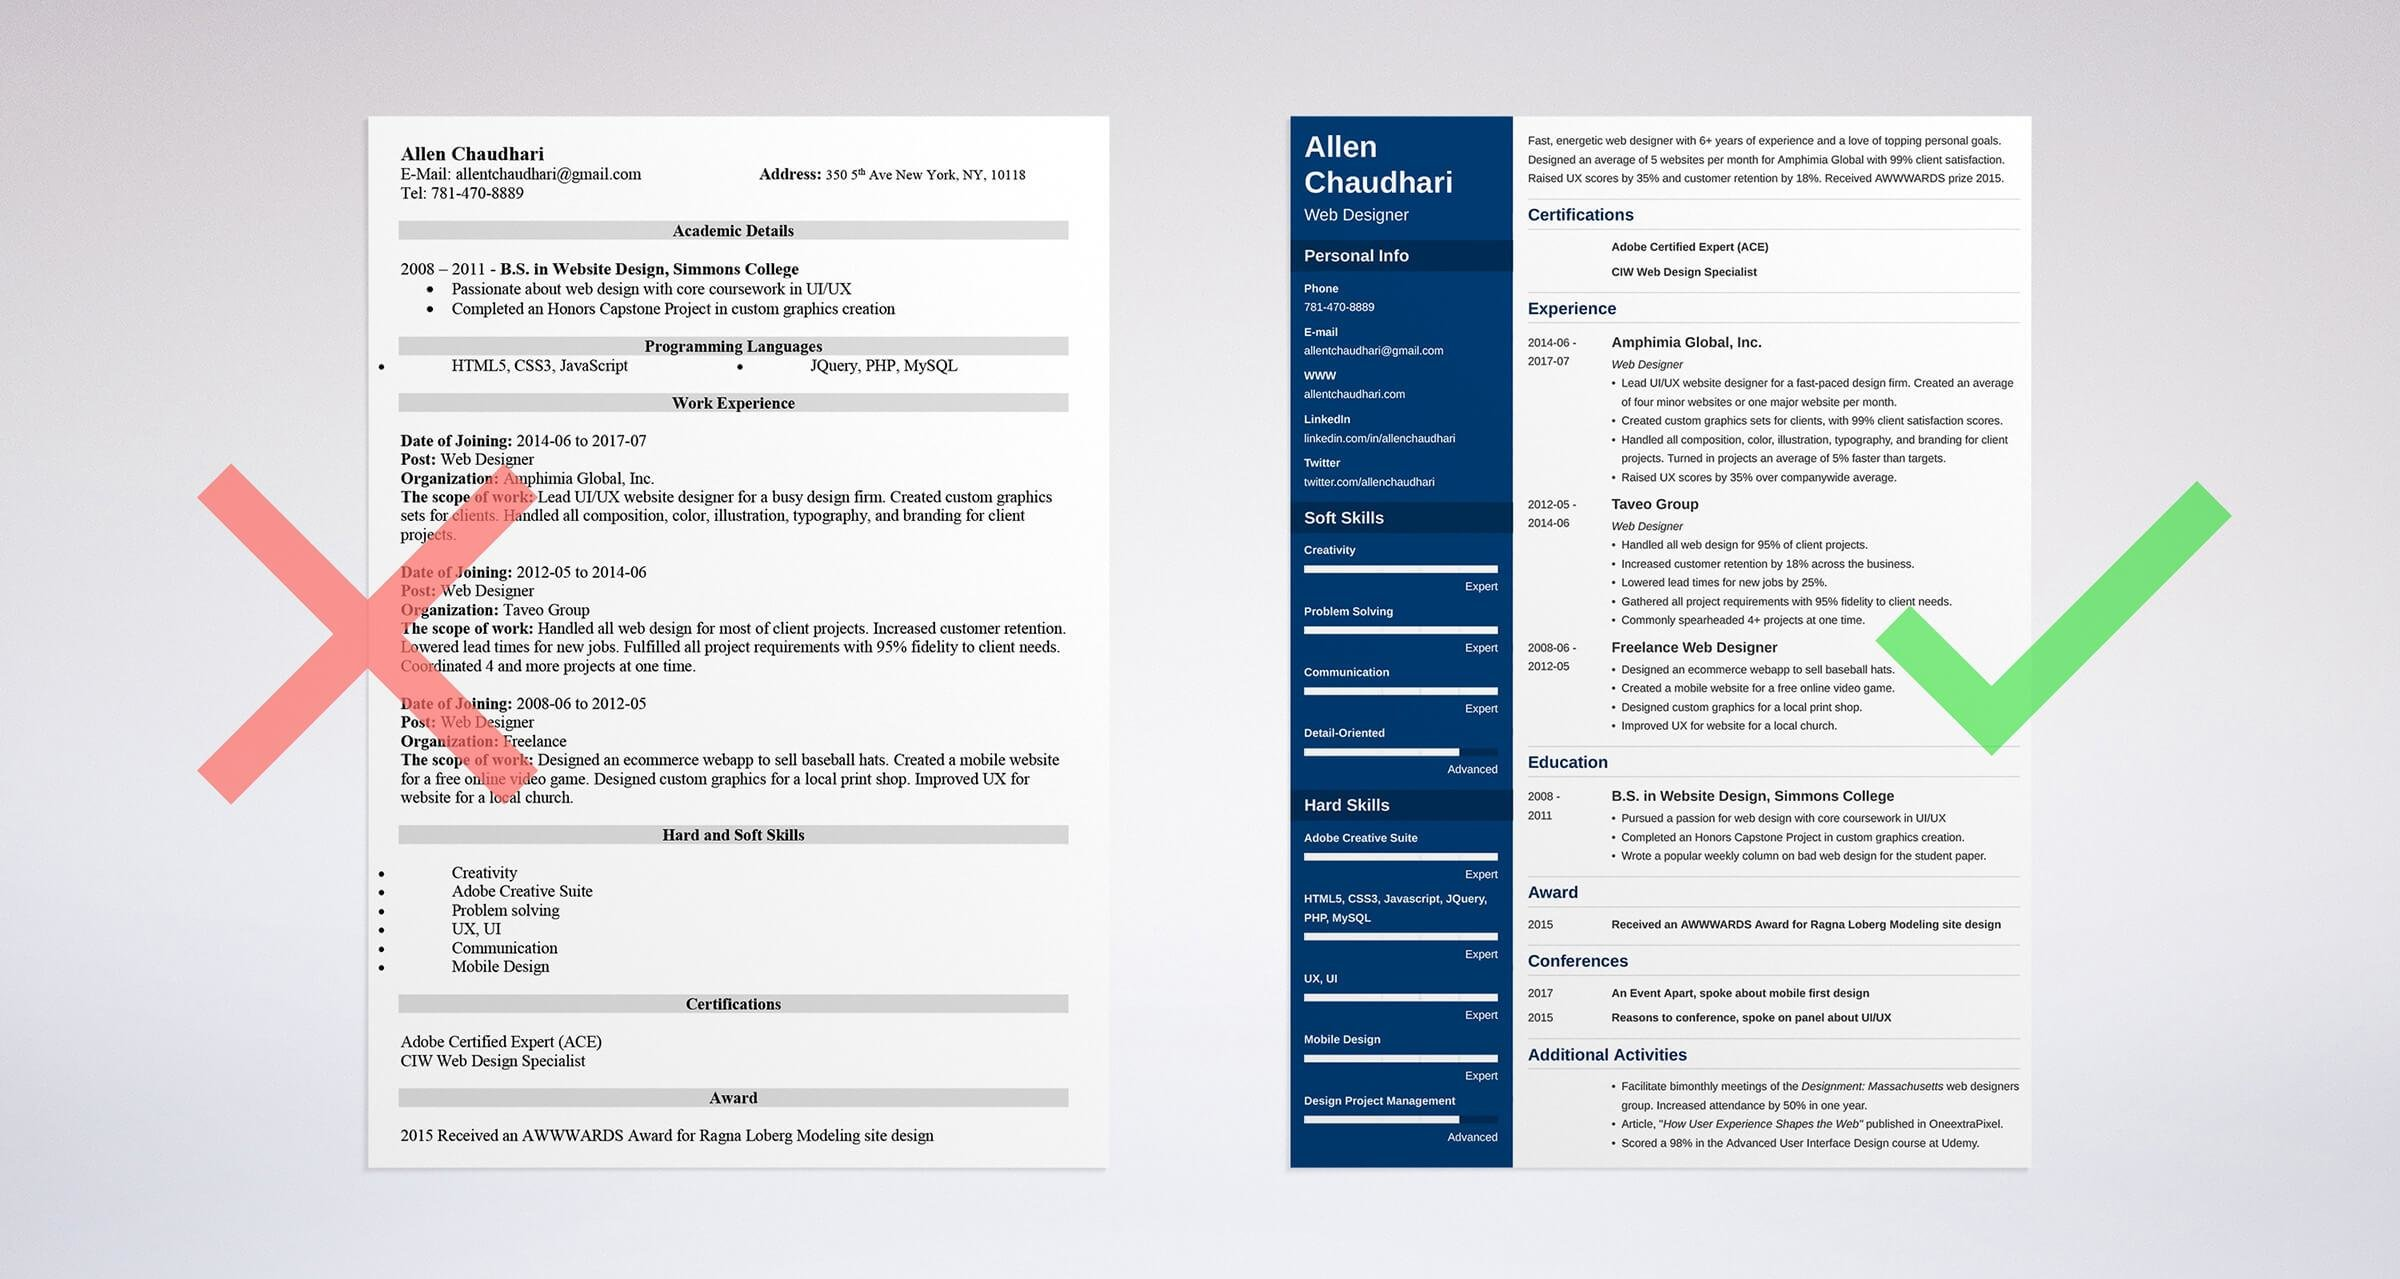 whats the best format for a web designer resume